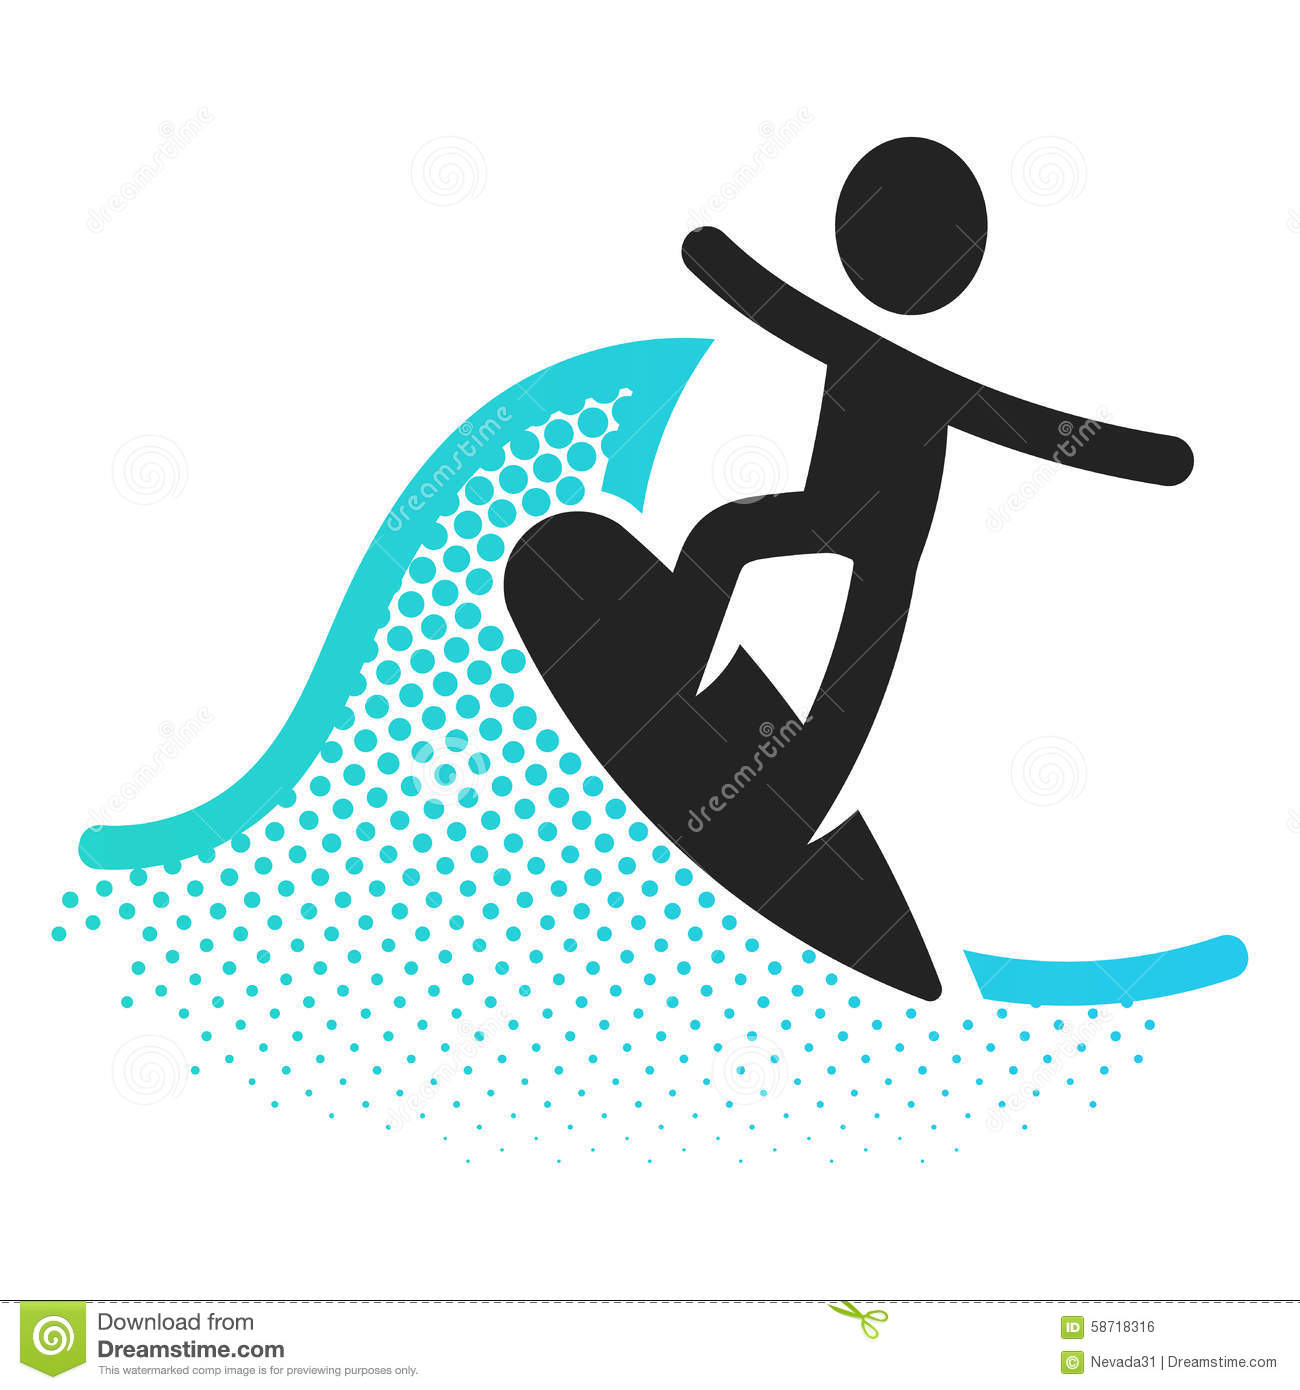 Surfing icon stock illustration. Image of pool, pictogram ...